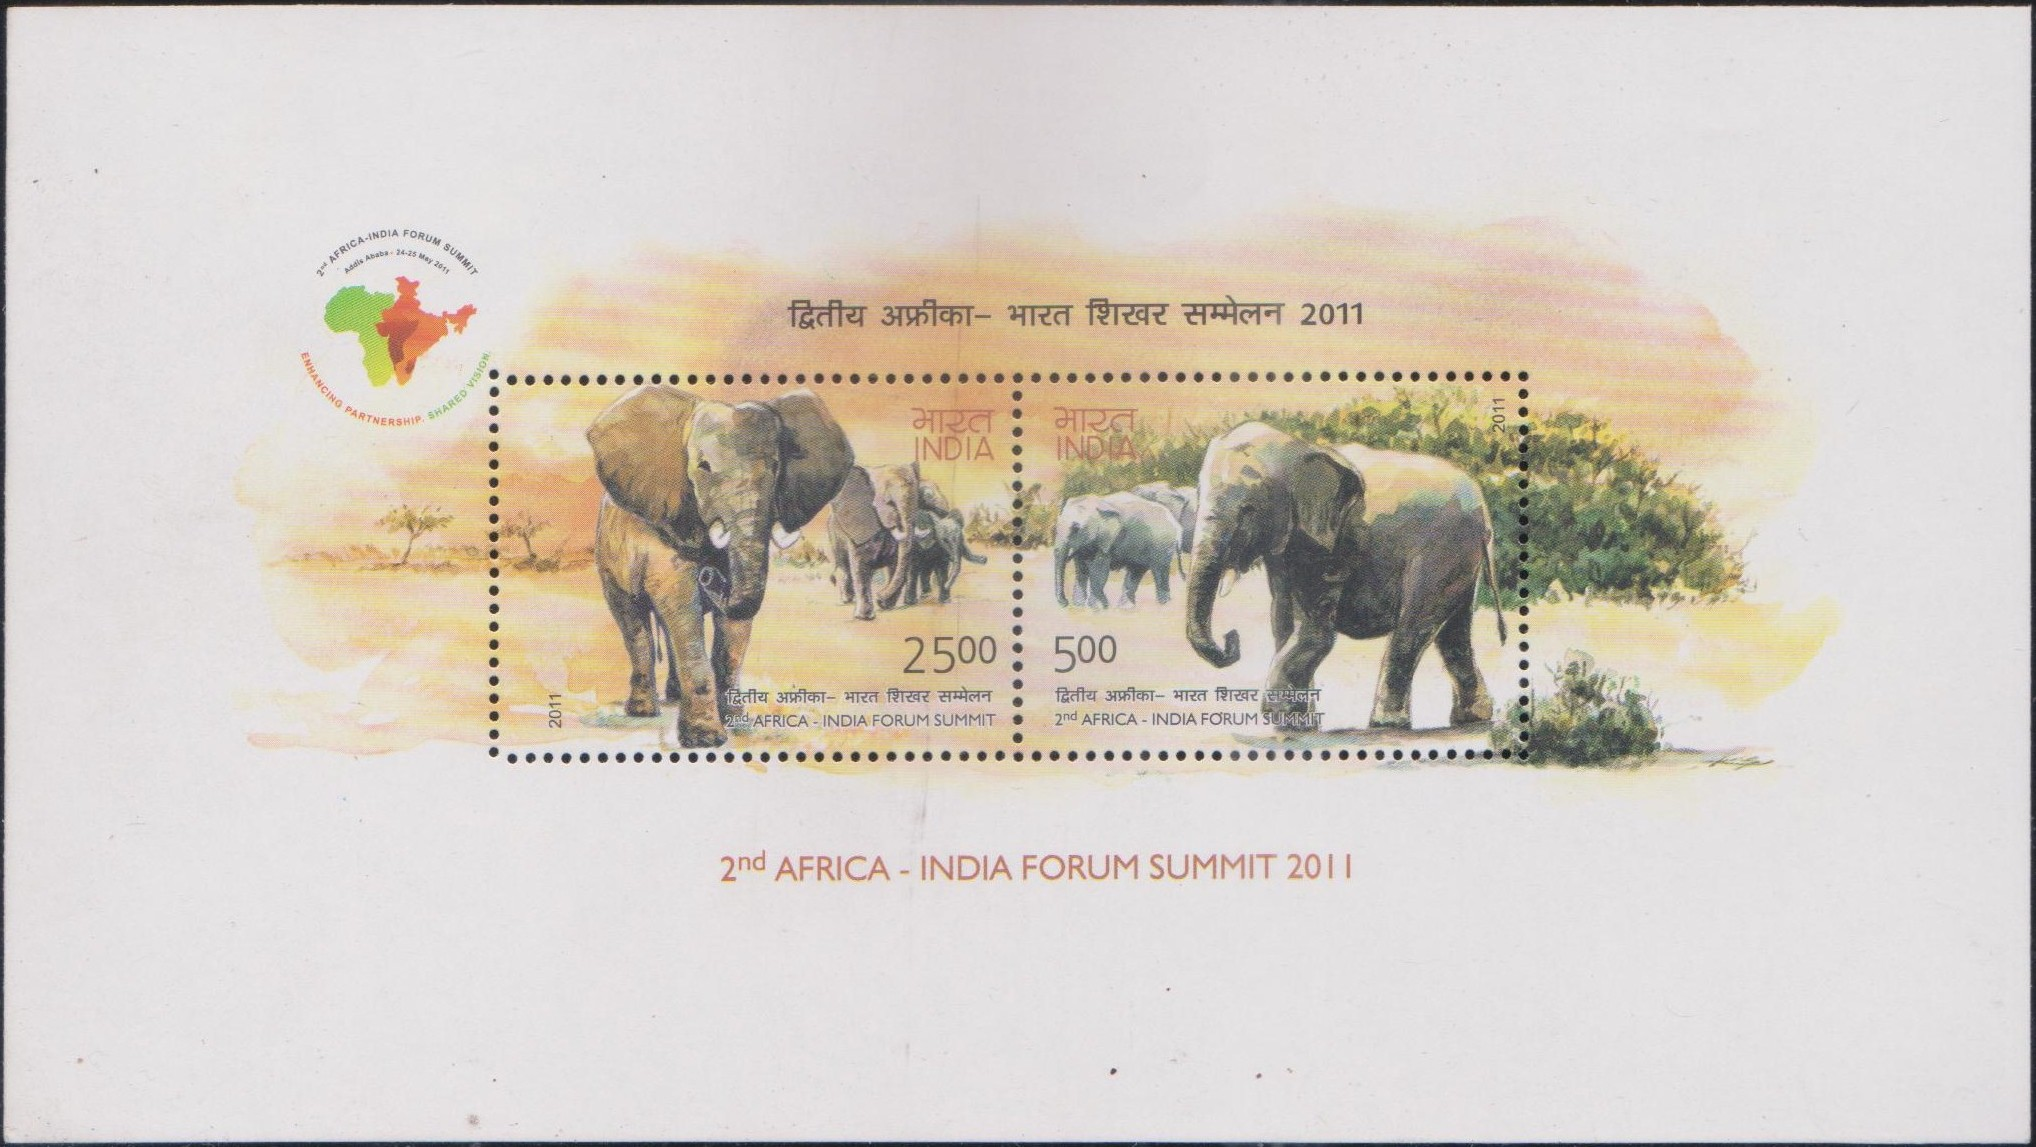 African Elephant (Loxodonta) and Indian Elephant (Elephas maximus indicus)